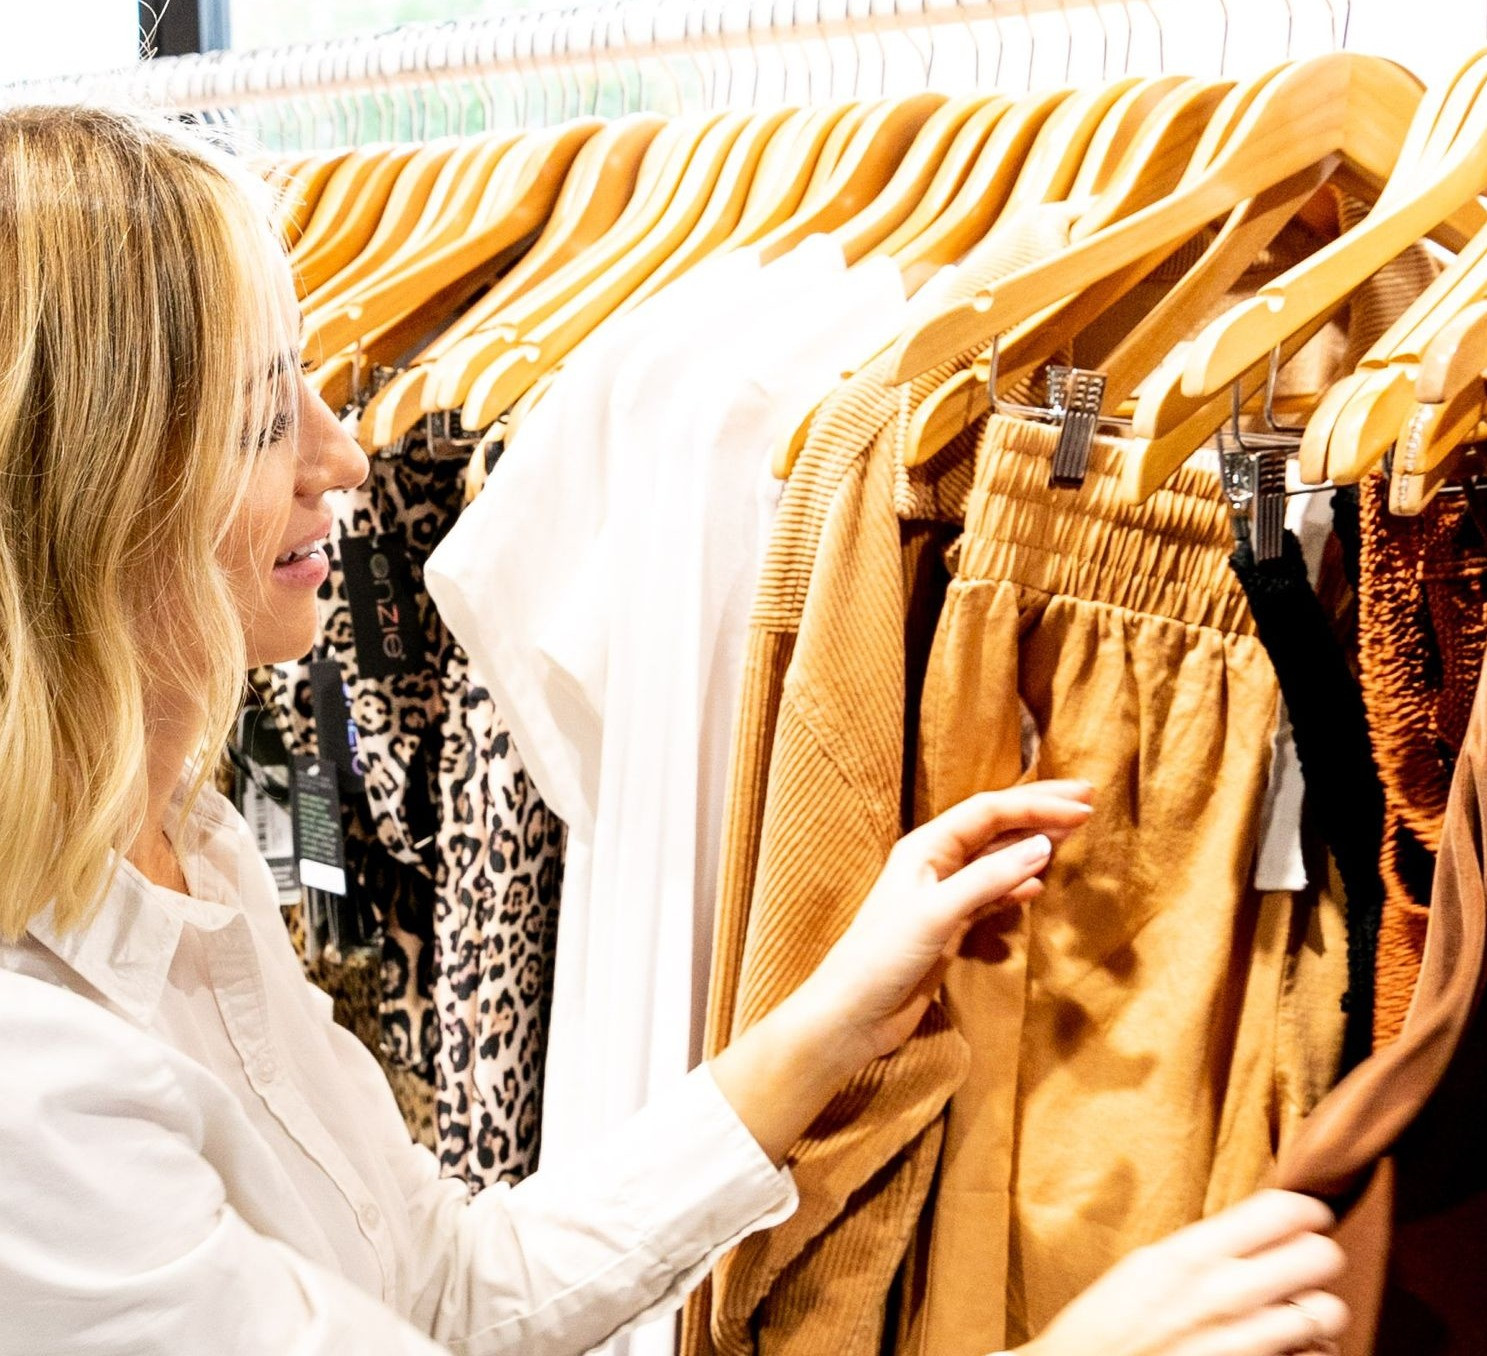 Girl looking through clothes hanging on rack